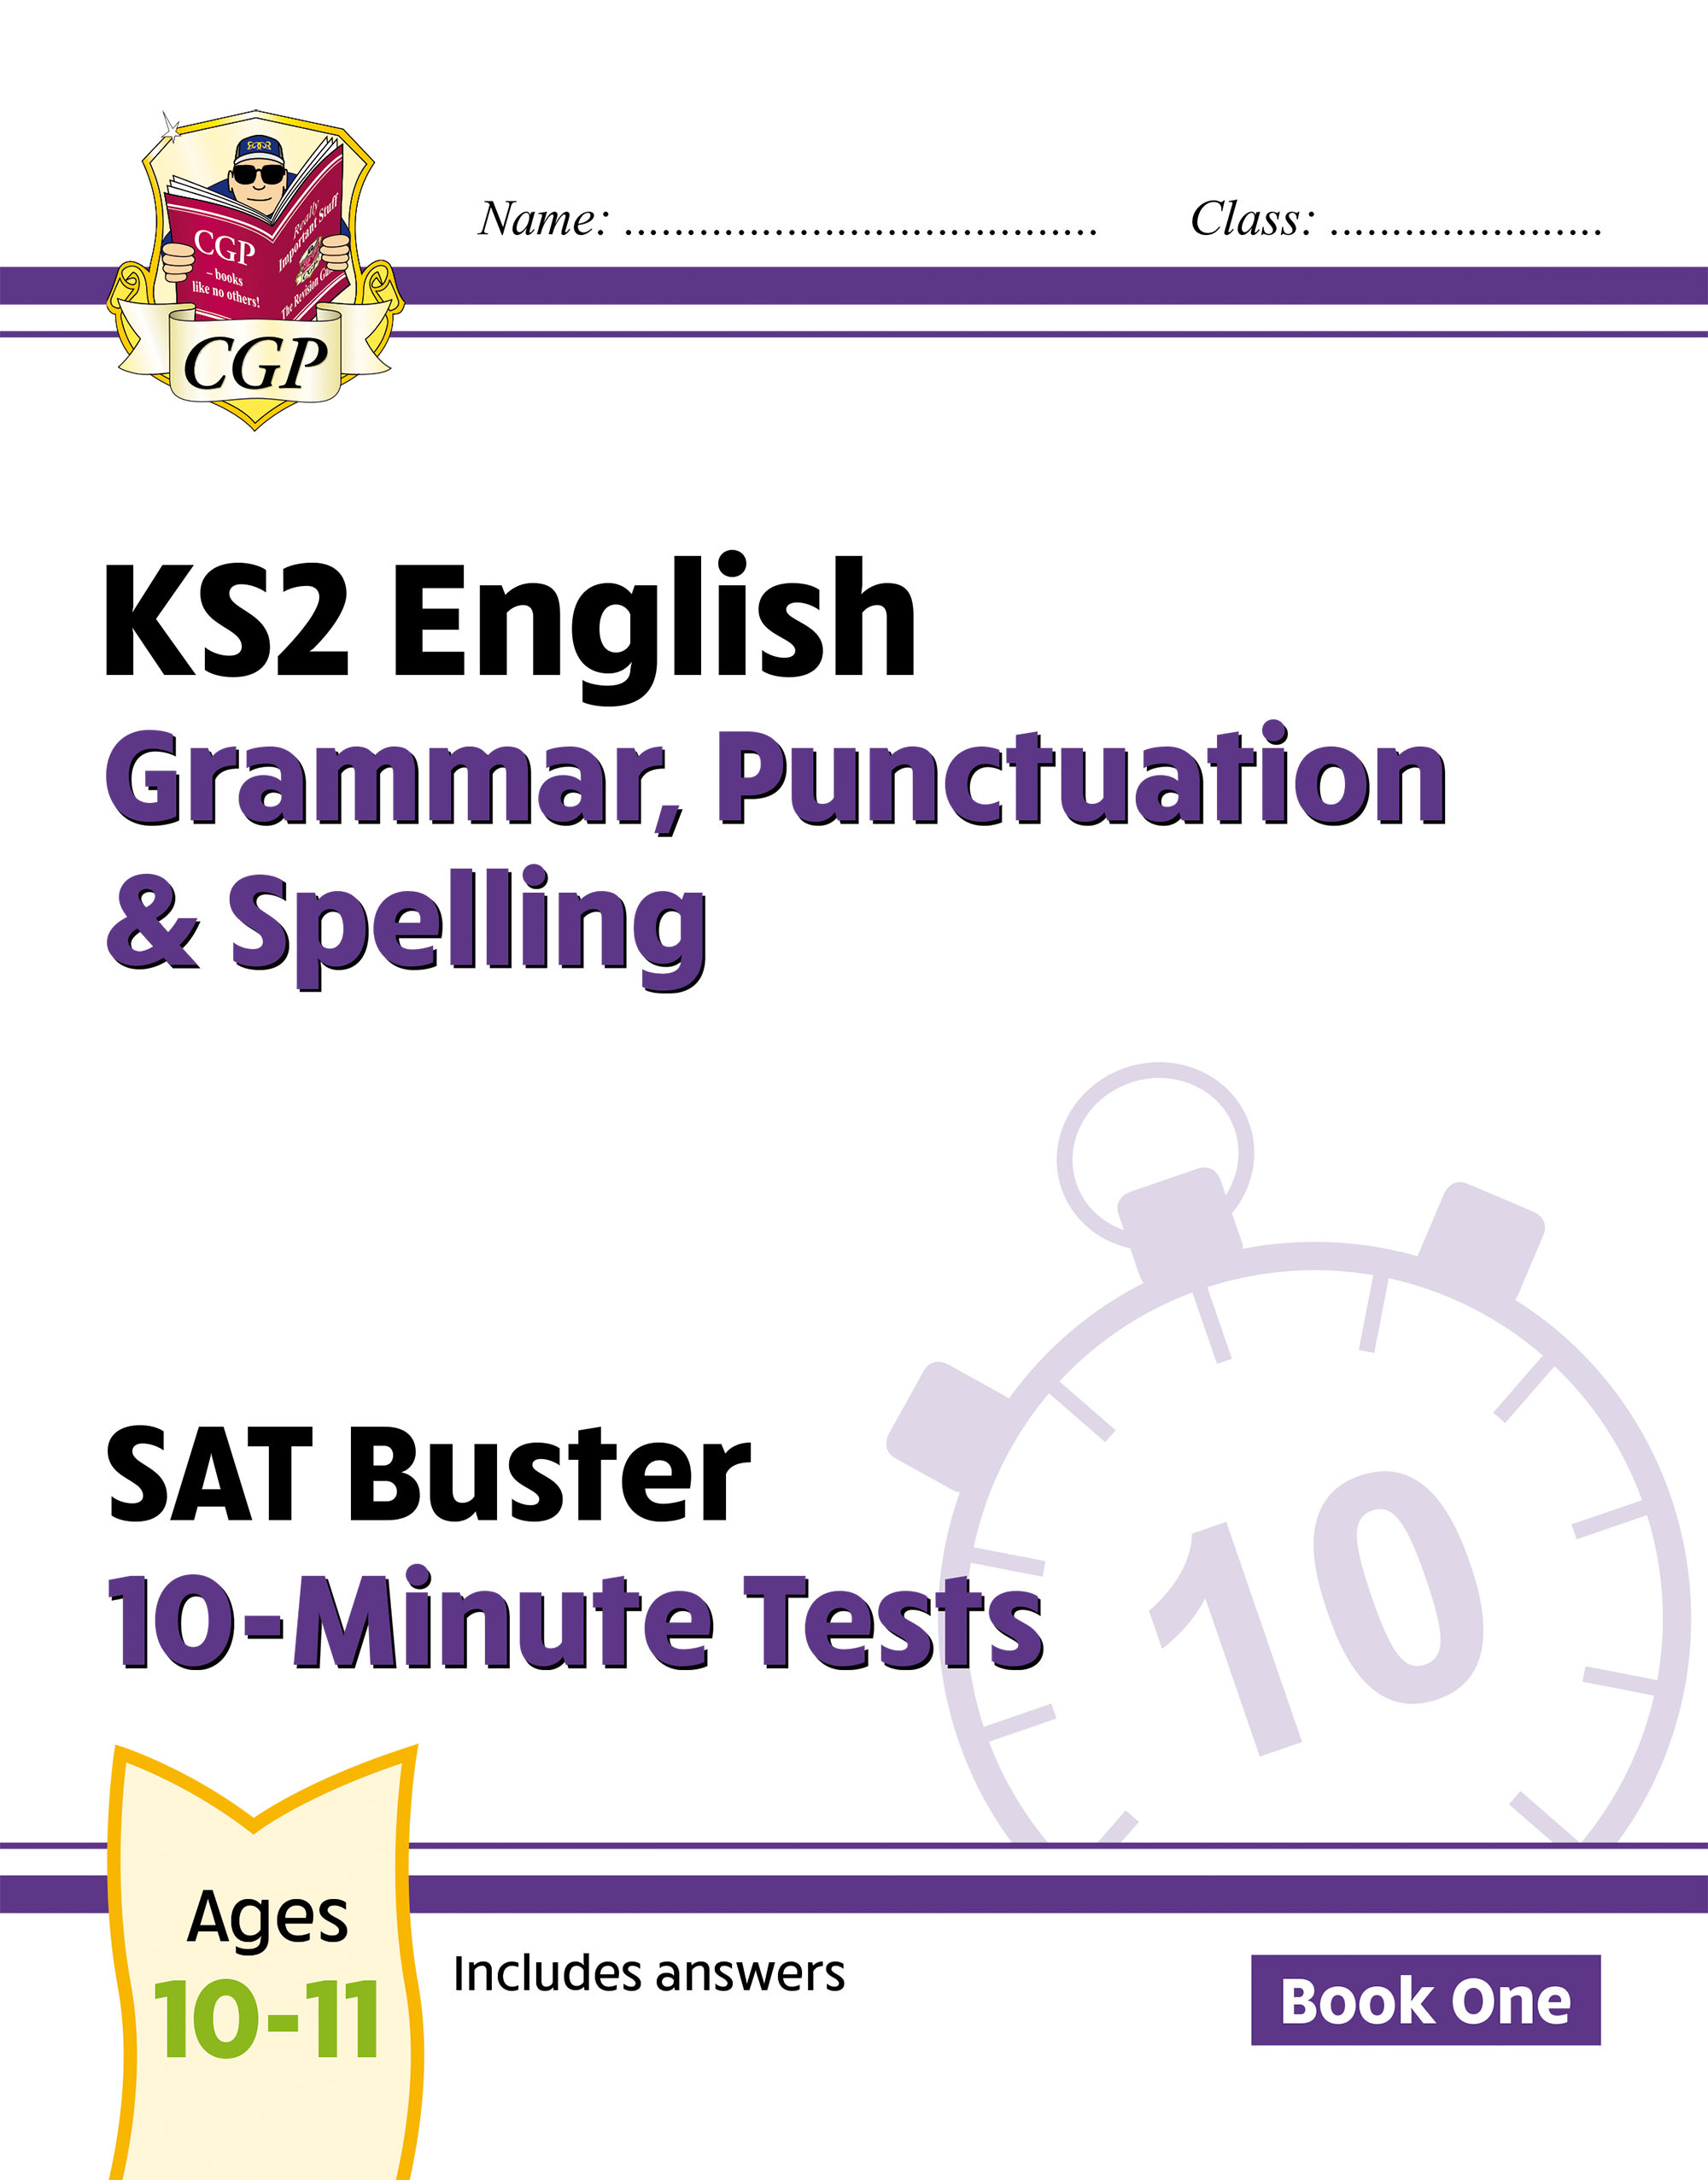 EXPG23D - New KS2 English SAT Buster 10-Minute Tests: Grammar, Punctuation & Spelling-Book 1 - Onl E